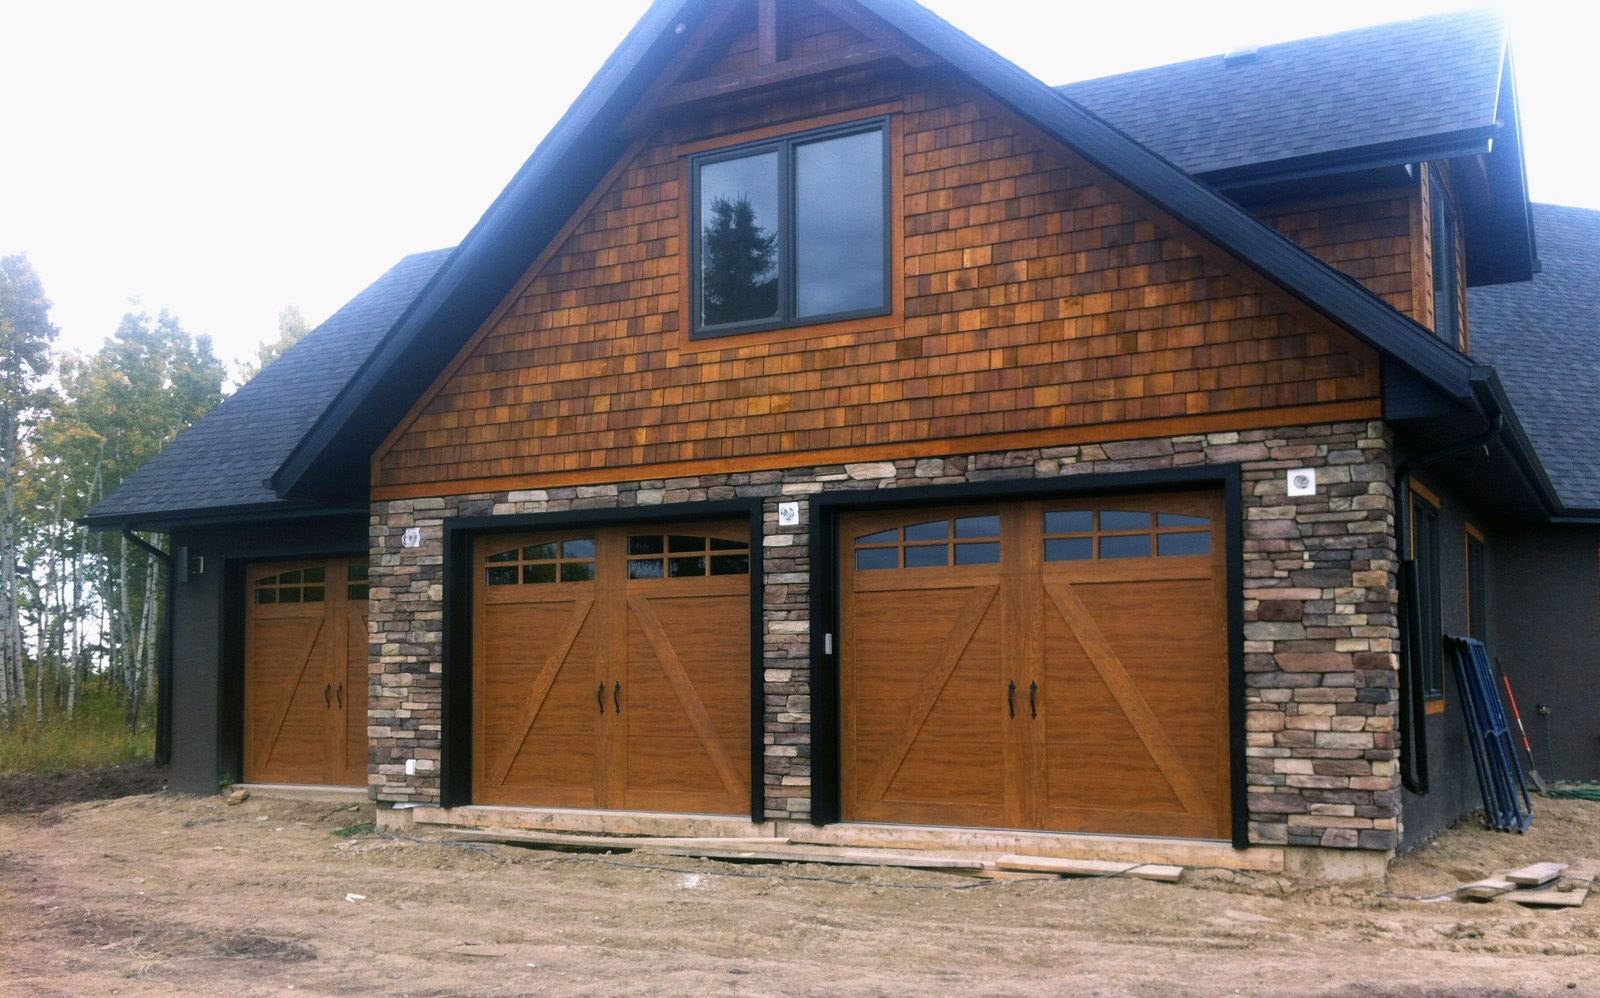 Clopay garage door installation Alberta